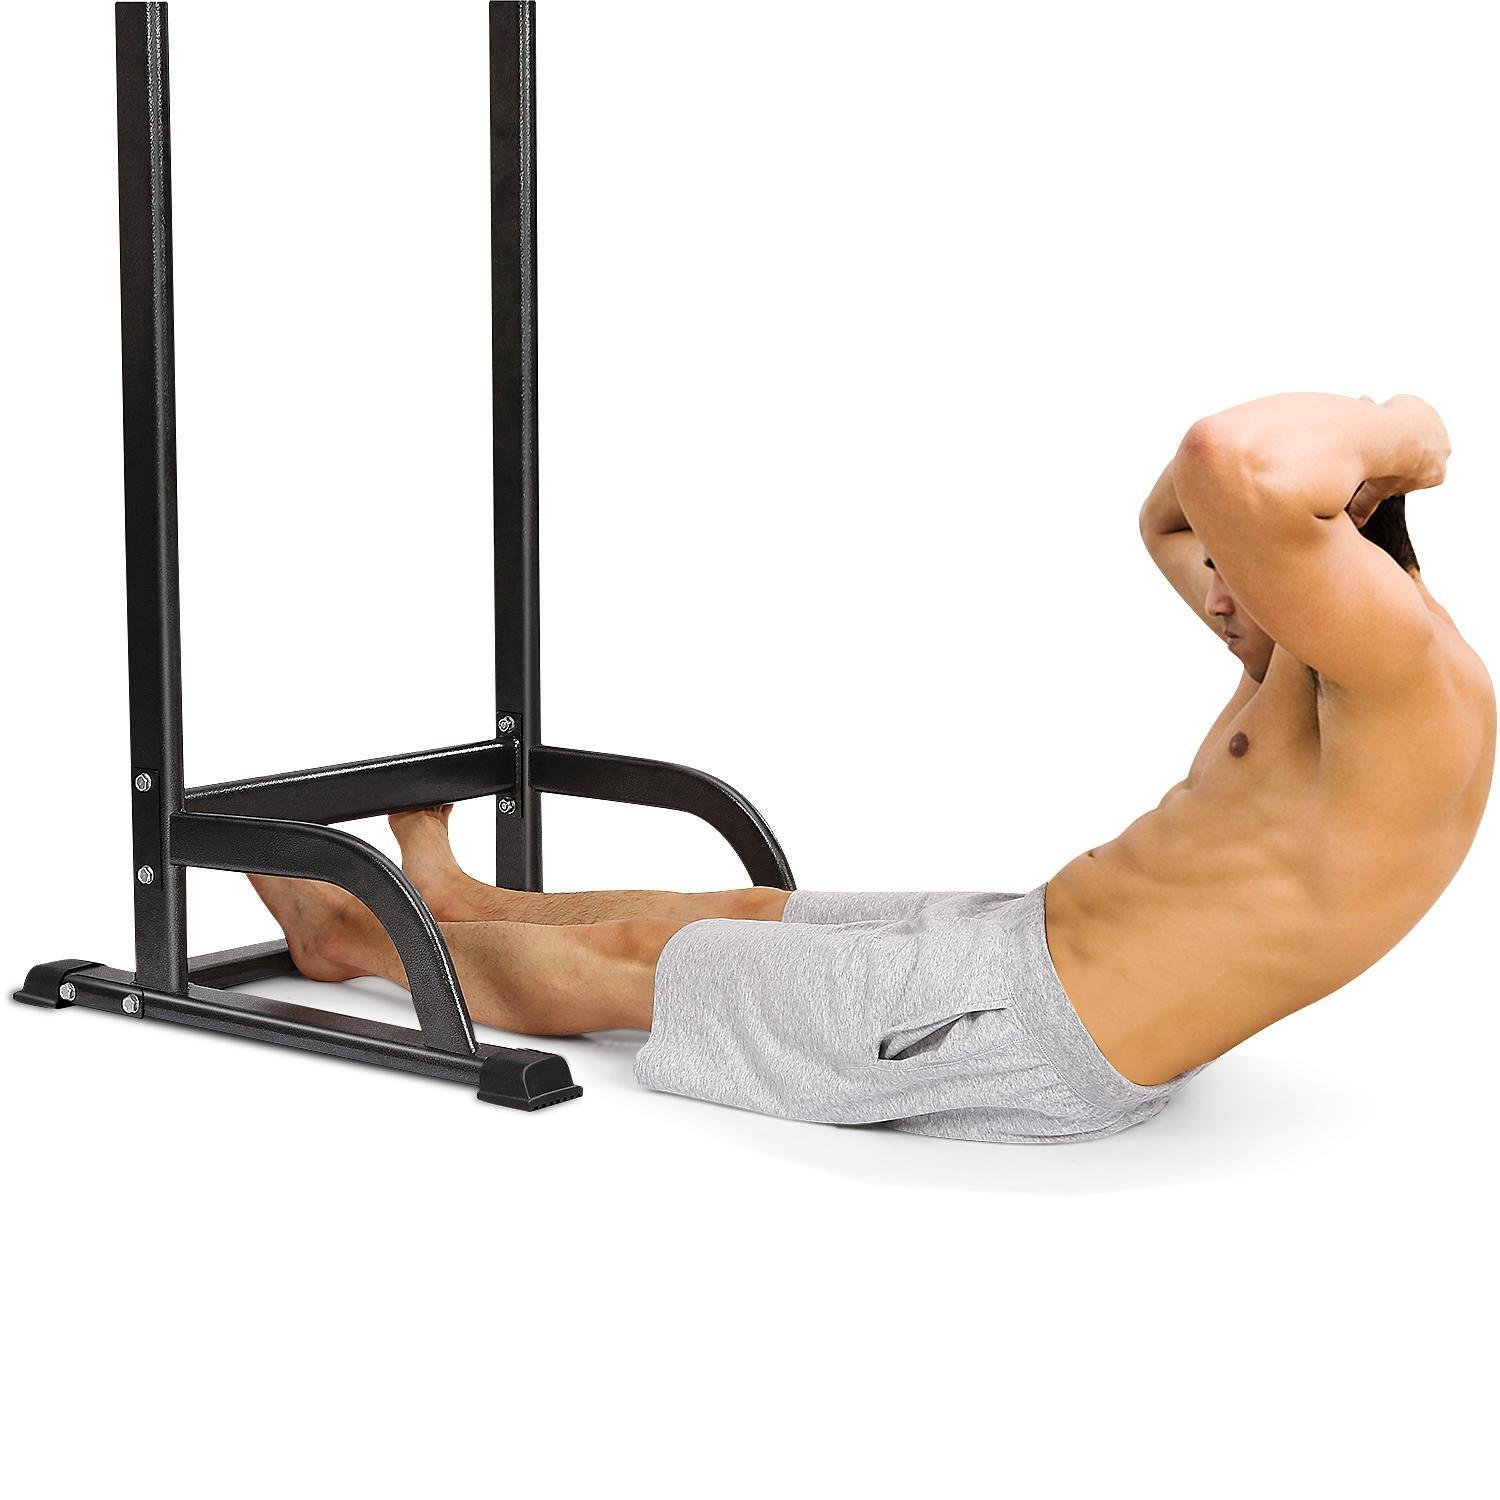 Adjustable Pull Up Chin Up Bar,Pull Up Stand Power Tower Strength Power Tower Fitness Workout Station by Rapesee (Image #5)